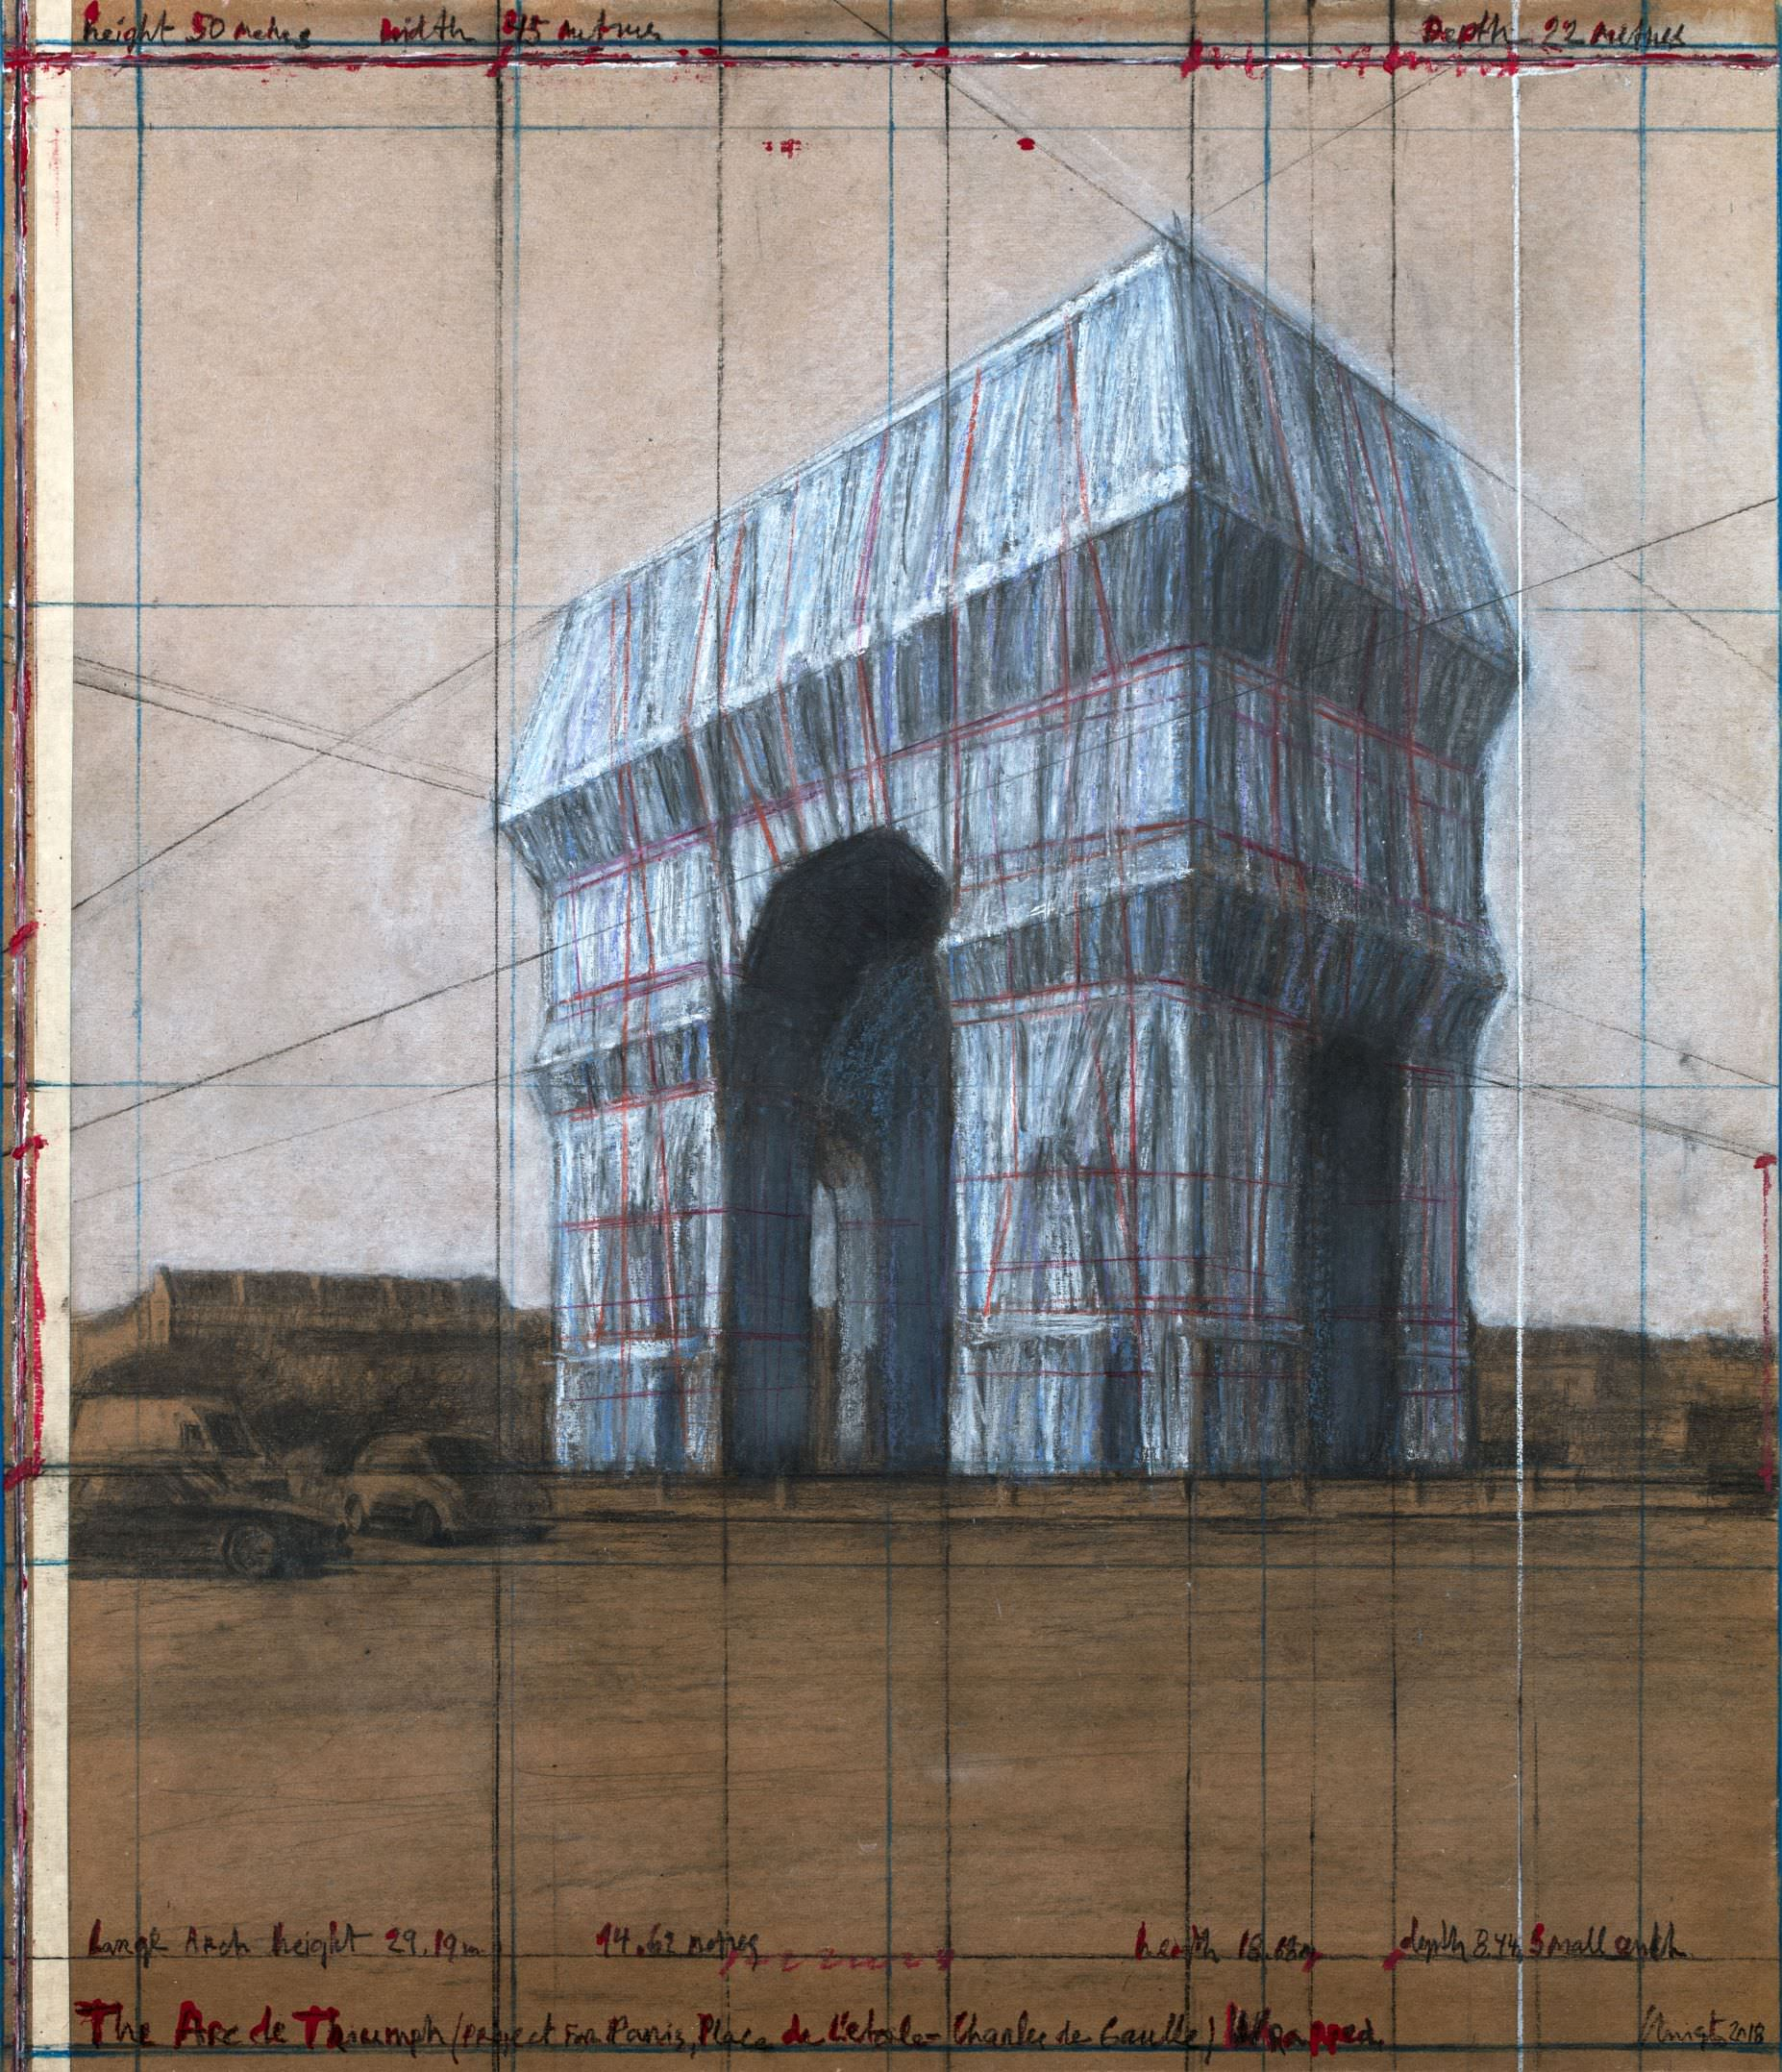 "Christo, The Arc de Triumph (Project for Paris, Place de l'Etoile – Charles de Gaulle) Wrapped. Drawing 2018, 30 1/2 x 26 1/4"" (77.5 x 66.7 cm). Pencil, charcoal, pastel, wax crayon, enamel paint and tape on brown board. Photo: André Grossmann © 2018 Christo"